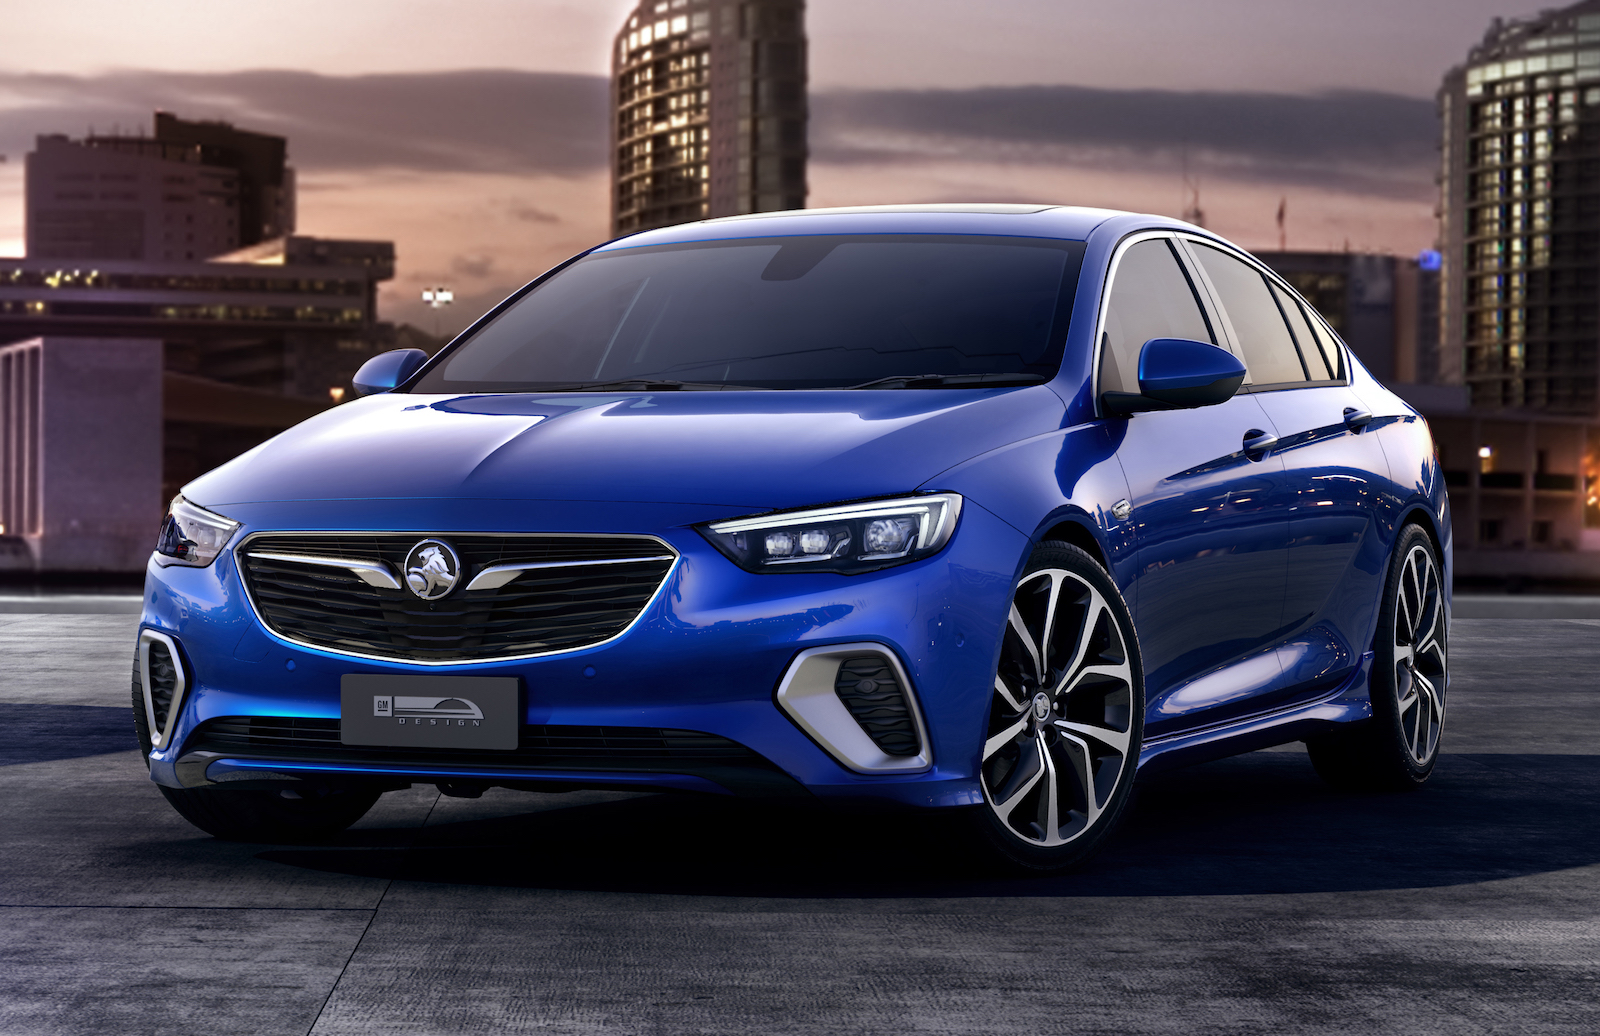 2018 Holden Commodore Vxr Revealed As Performance Variant